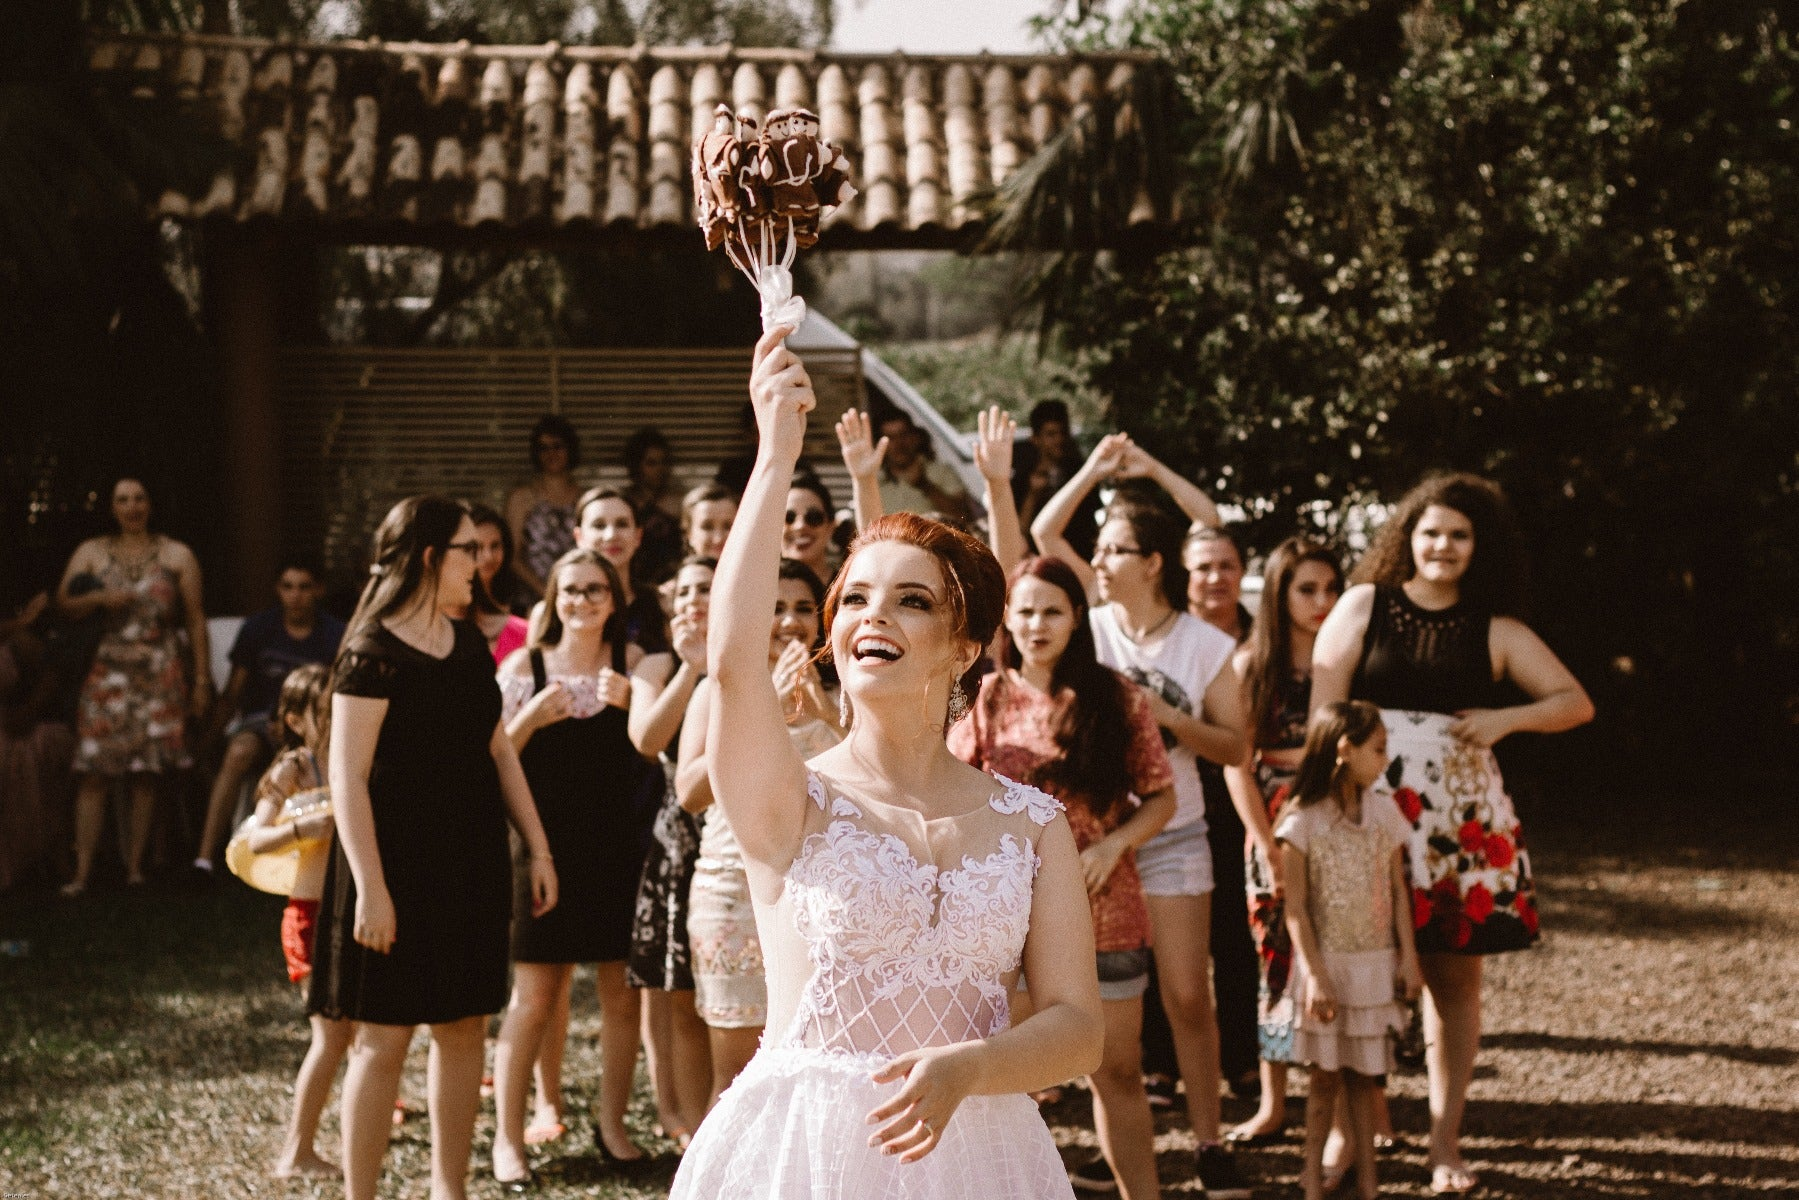 Wedding throwing bouquet